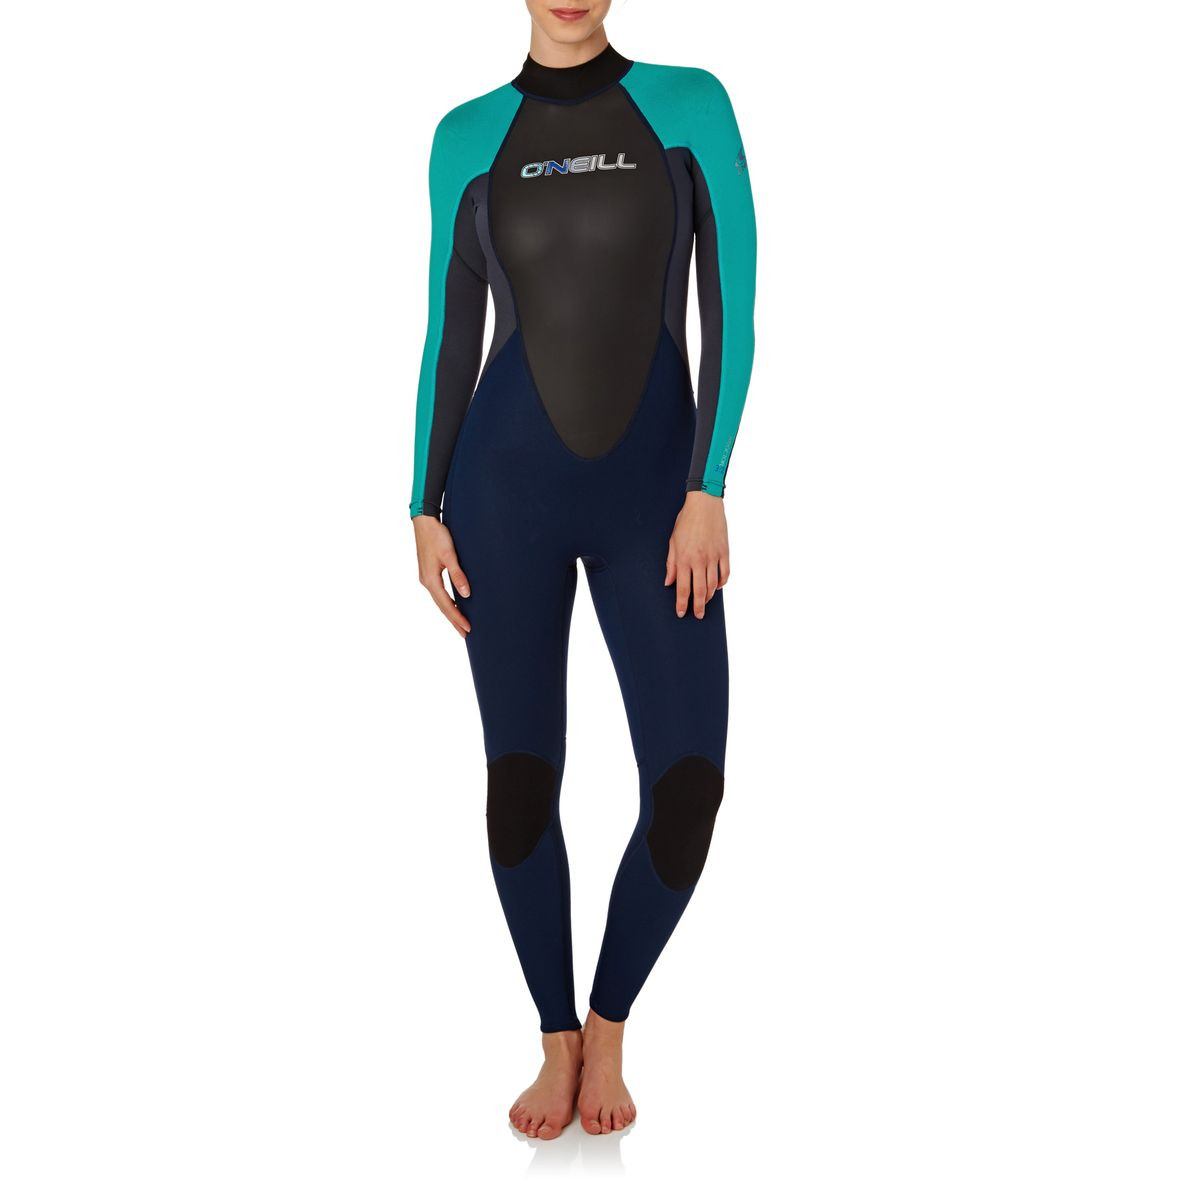 O'Neill Womens Reactor 3/2mm 2017 Back Zip Wetsuit - Navy/ Turqoise/ Graphite